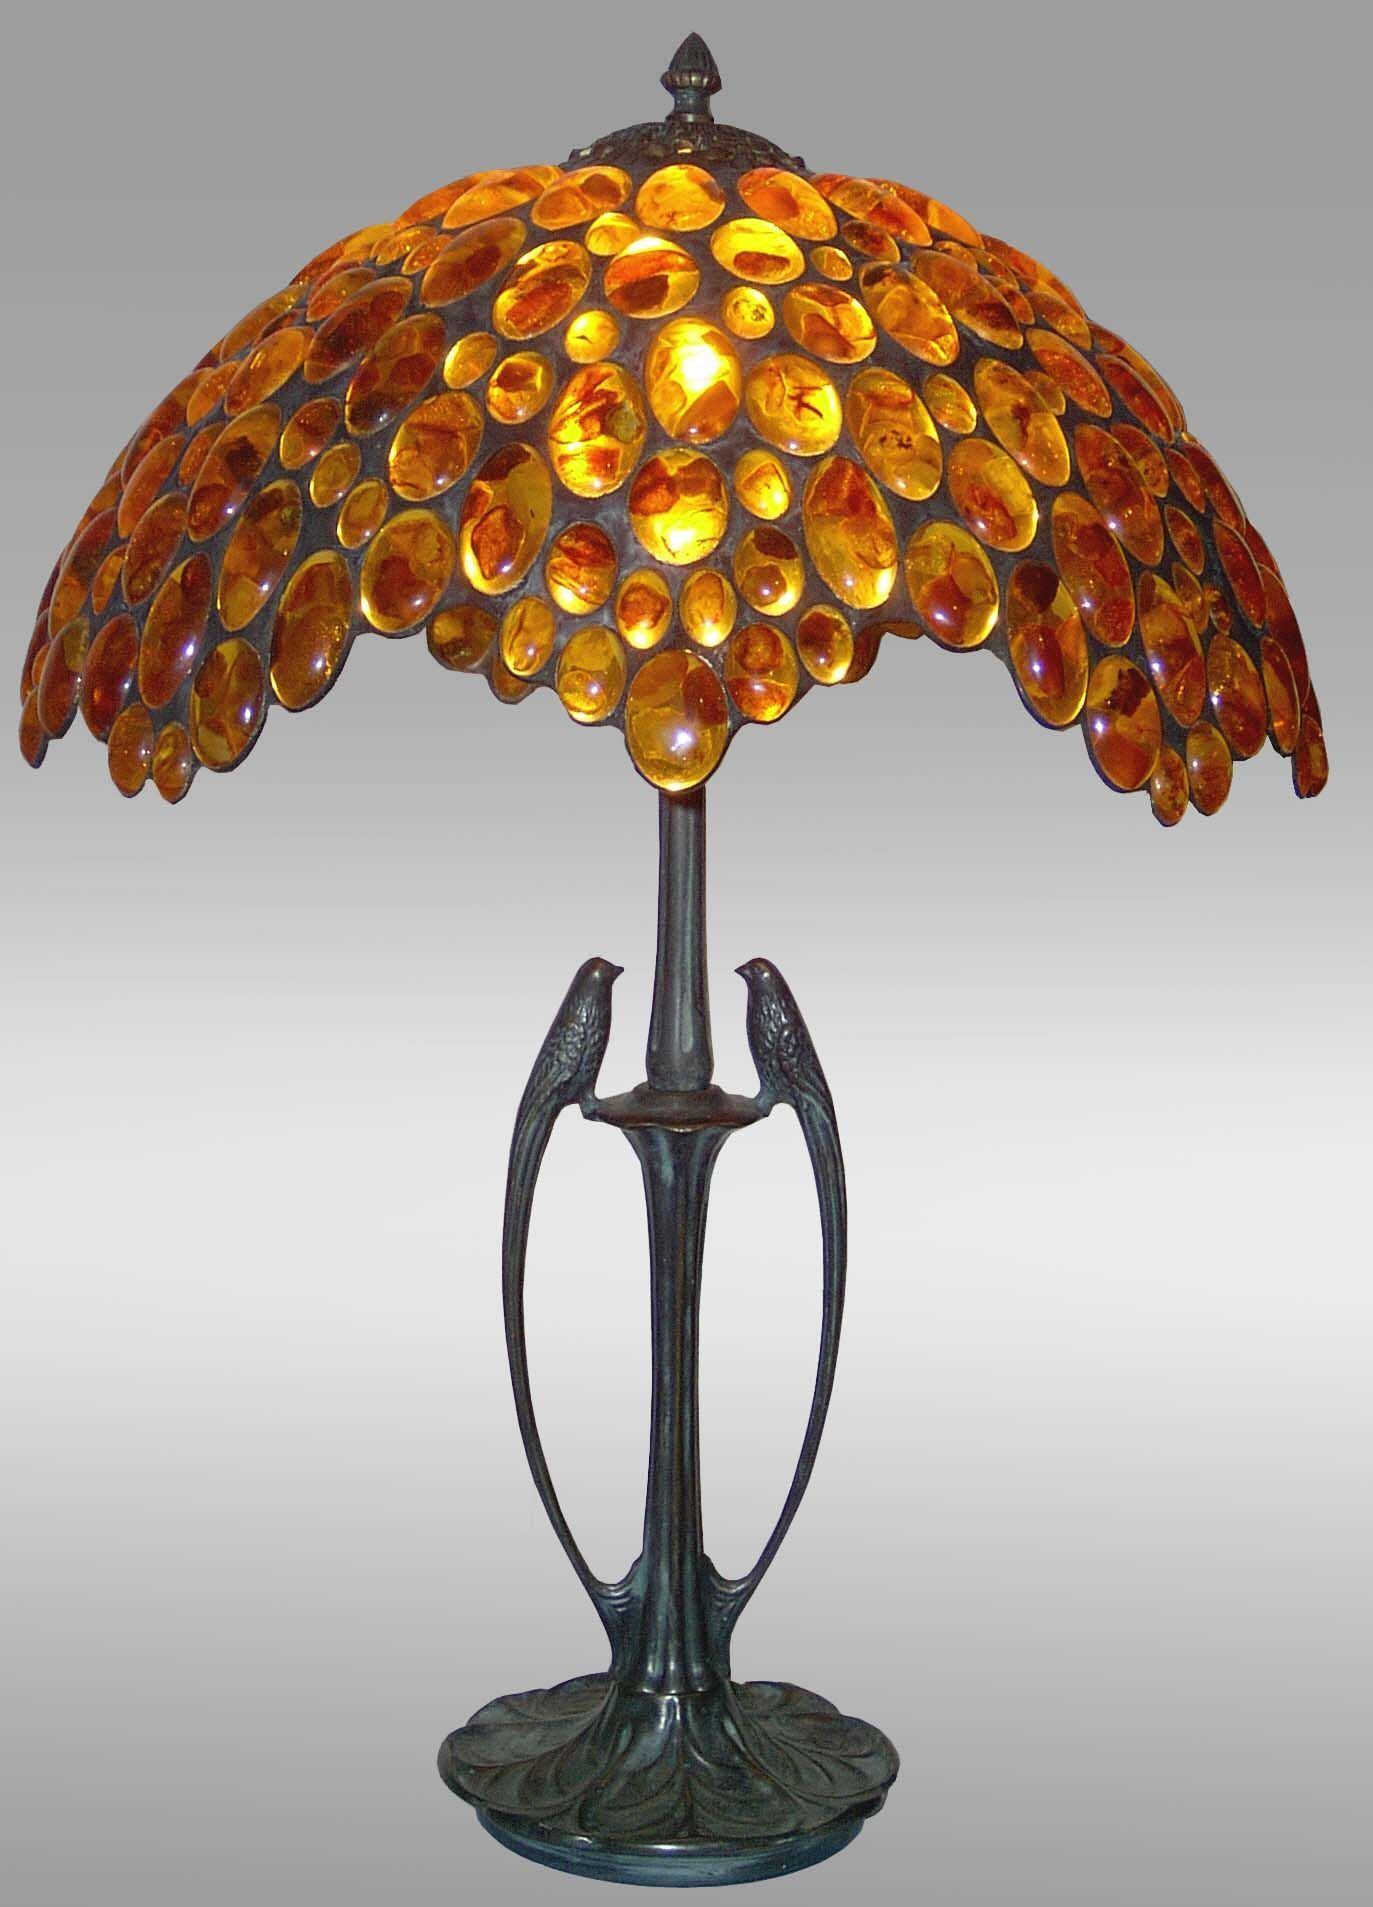 Attirant Amber Bird Lamp...the Shade Is Absolutely Stunning. I Want This